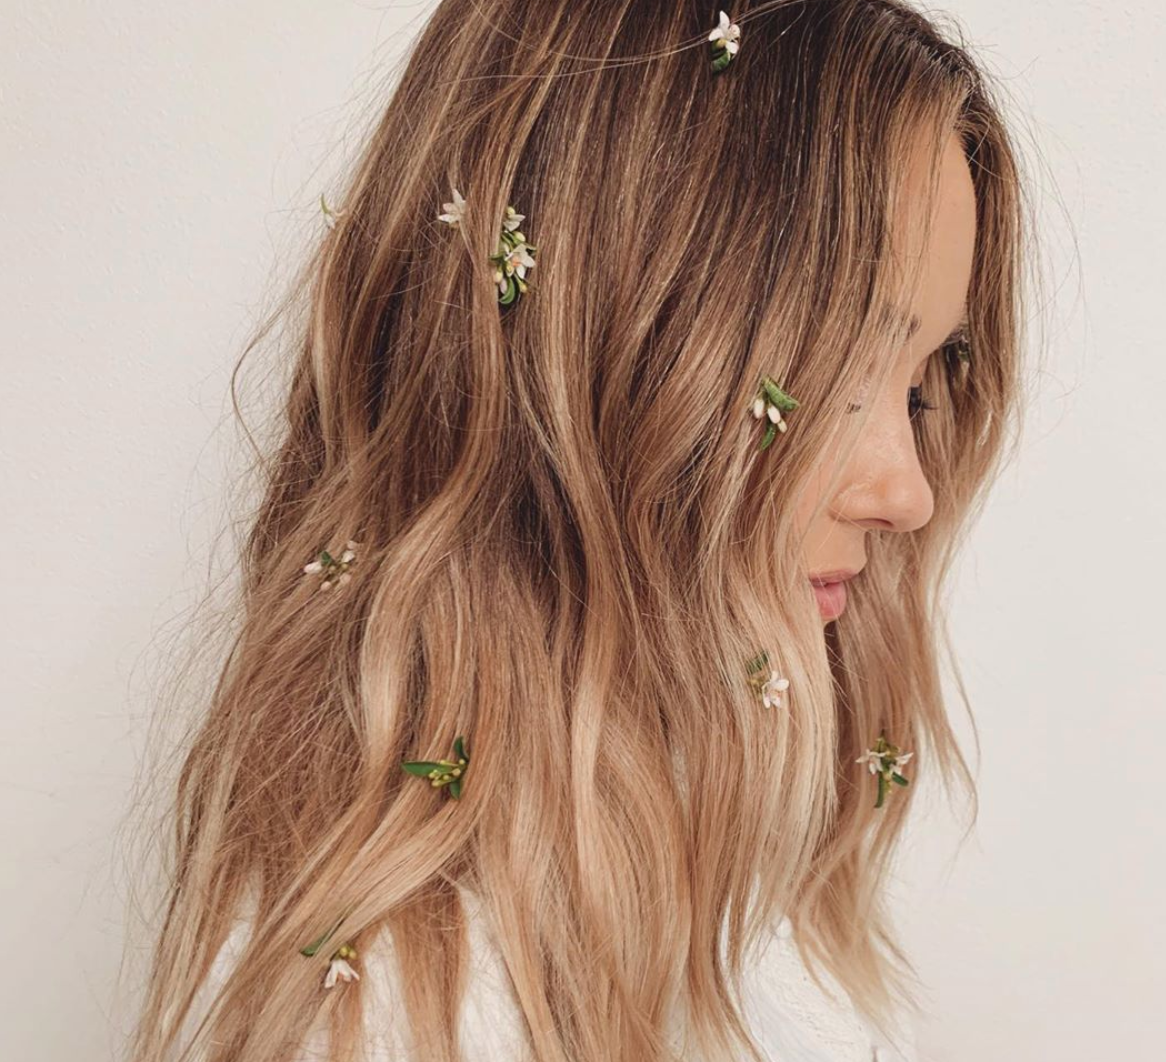 40 Shades Of Summery Blonde Hair Color To Try